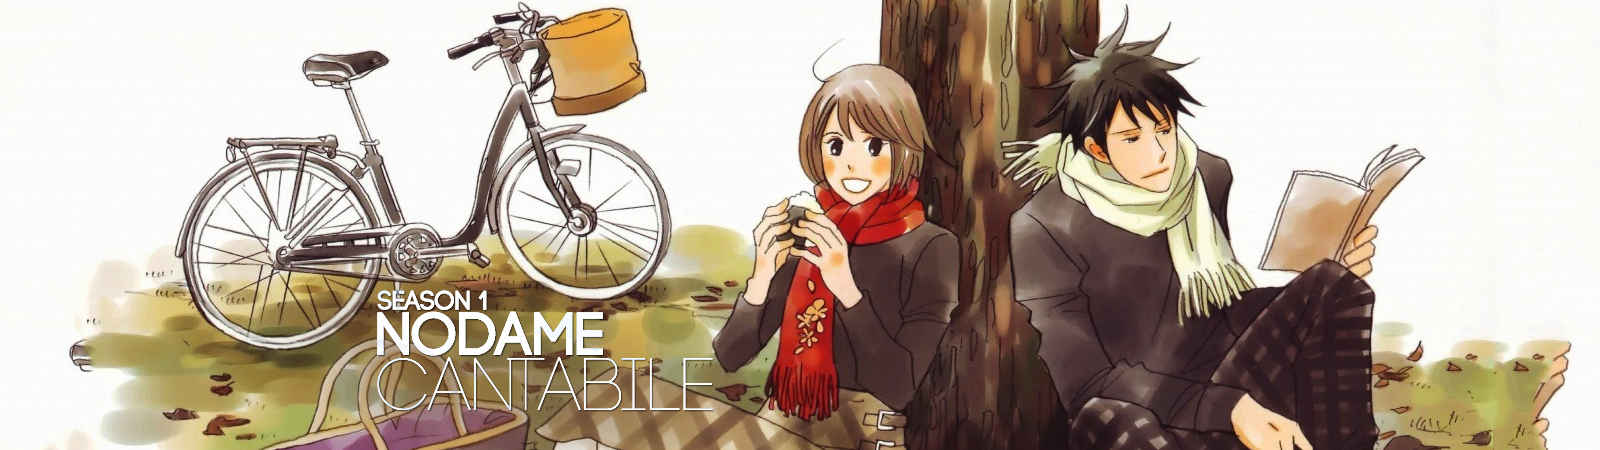 Nodame Cantabile - Season 1